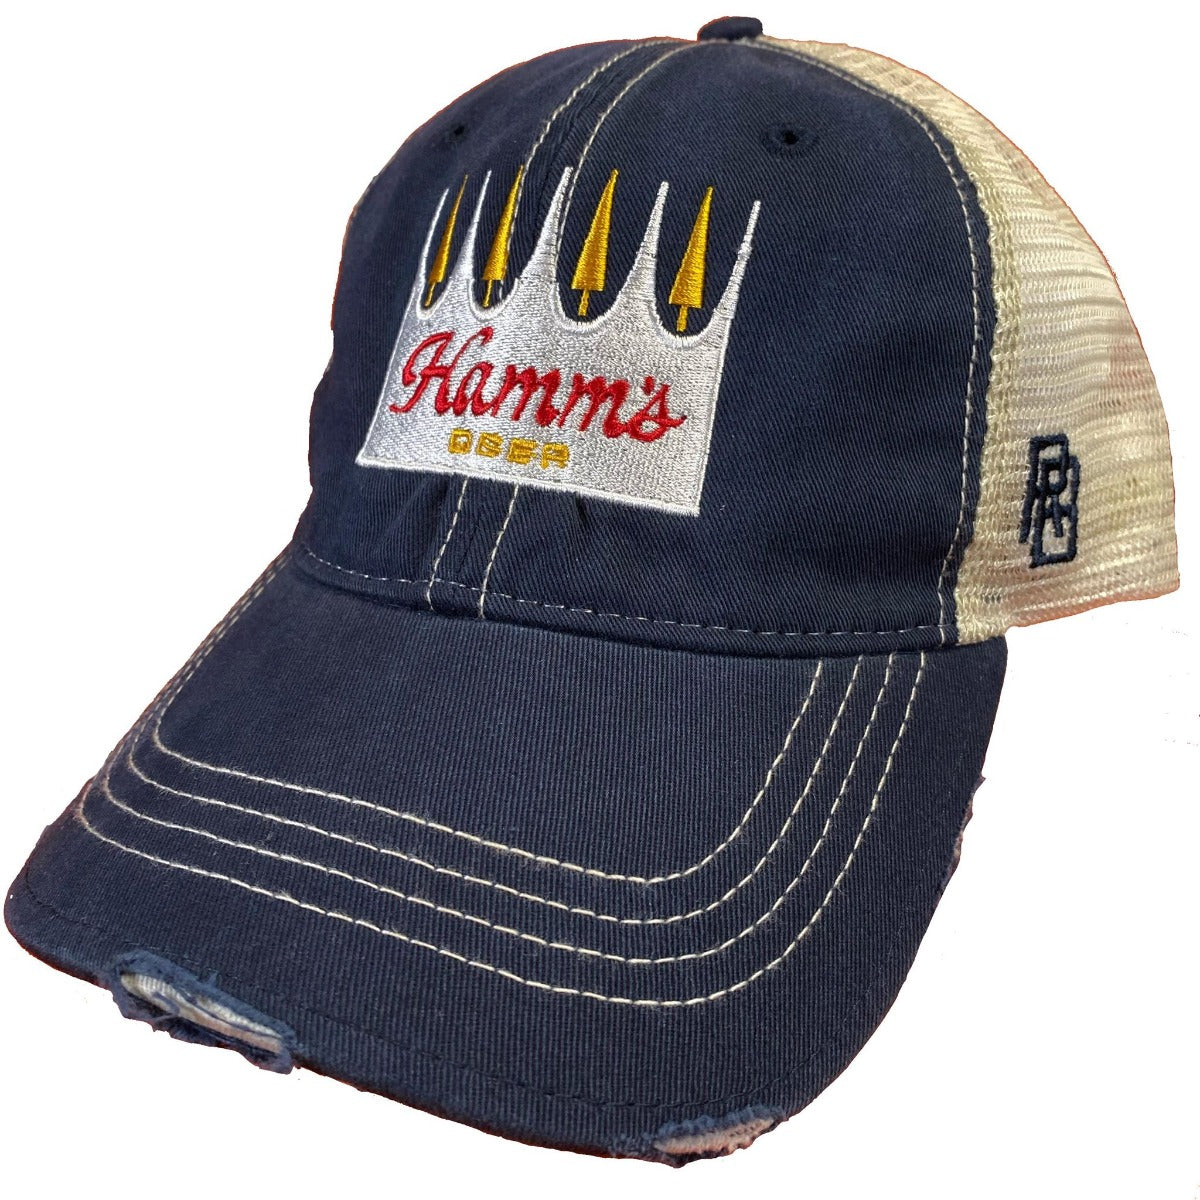 Hamm's Beer Vintage Snap Back Trucker Cap